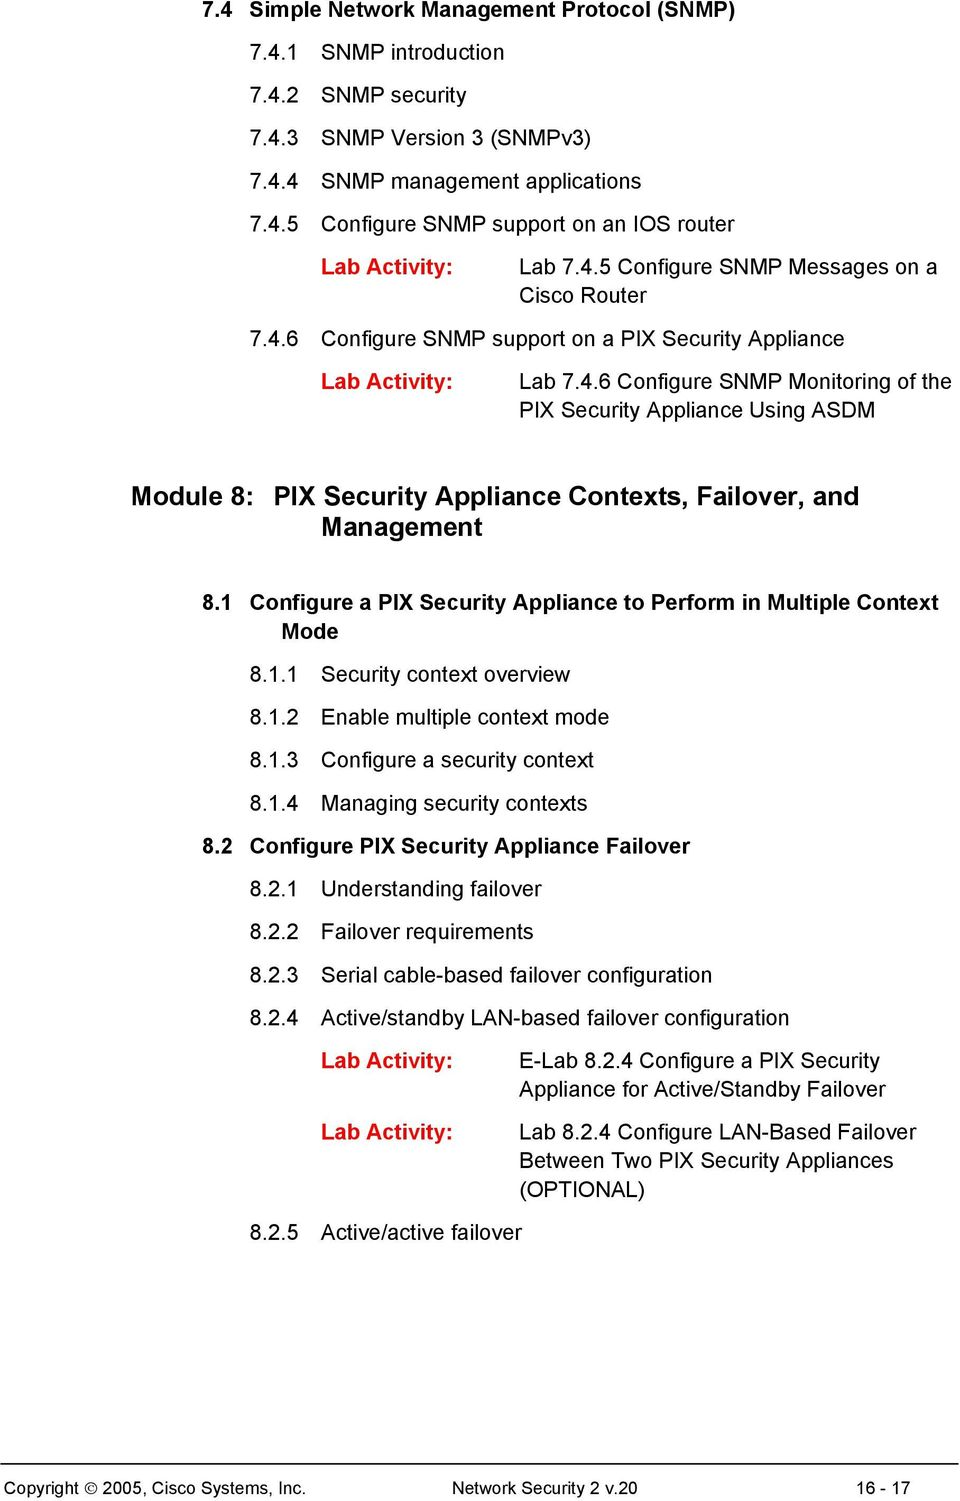 1 Configure a PIX Security Appliance to Perform in Multiple Context Mode 8.1.1 Security context overview 8.1.2 Enable multiple context mode 8.1.3 Configure a security context 8.1.4 Managing security contexts 8.